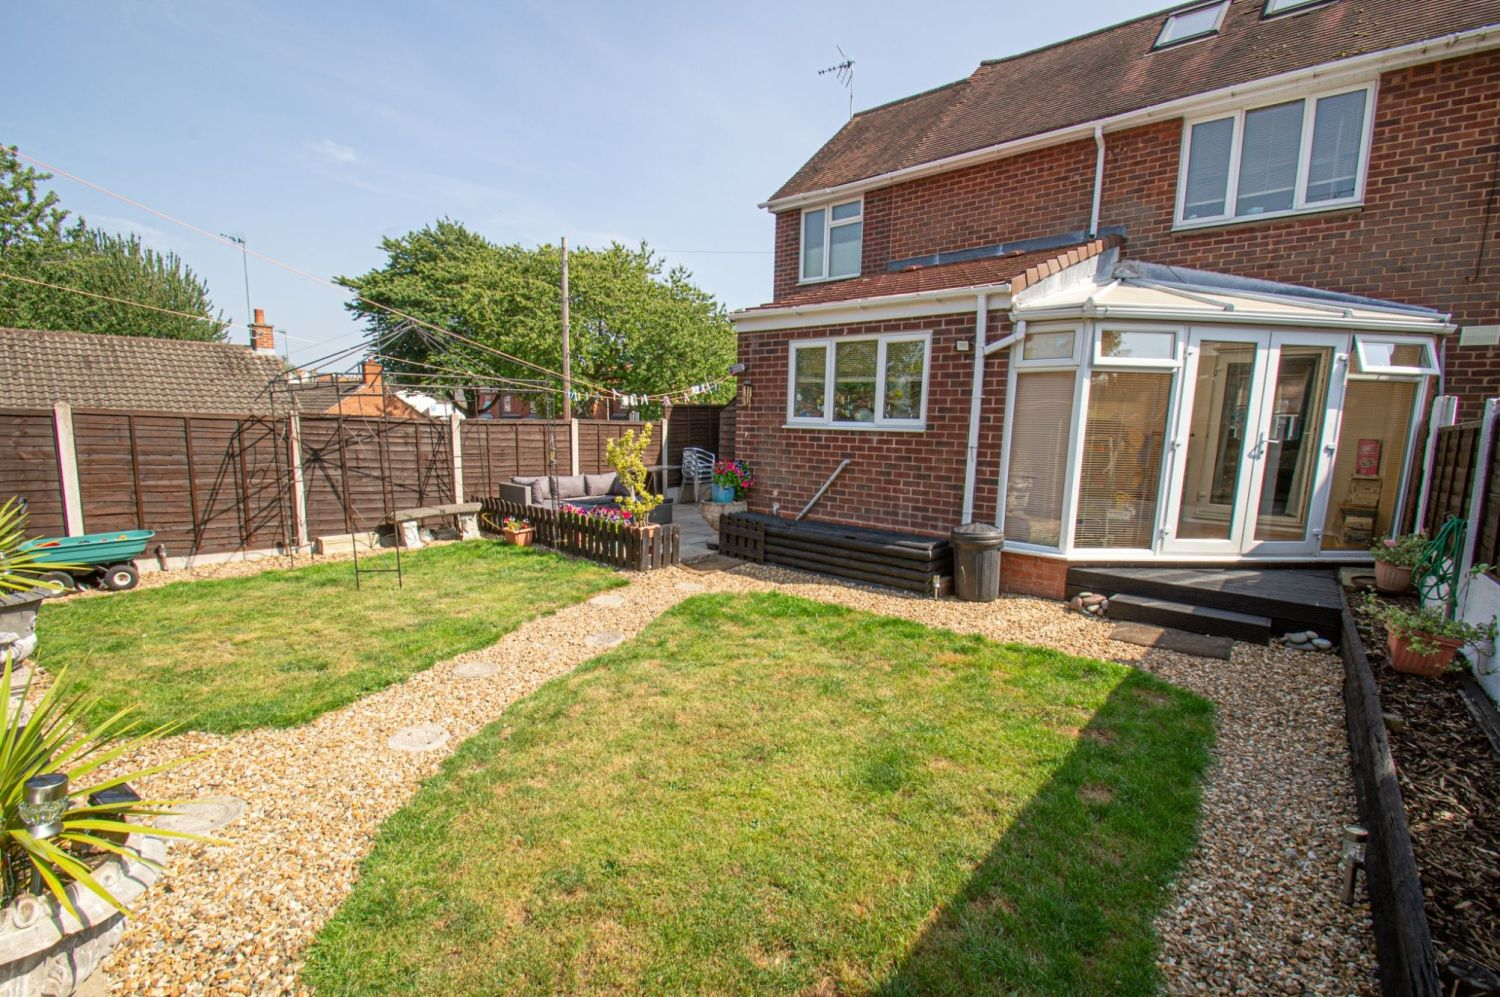 4 bed semi-detached for sale in Oak Street, Kingswinford  - Property Image 22